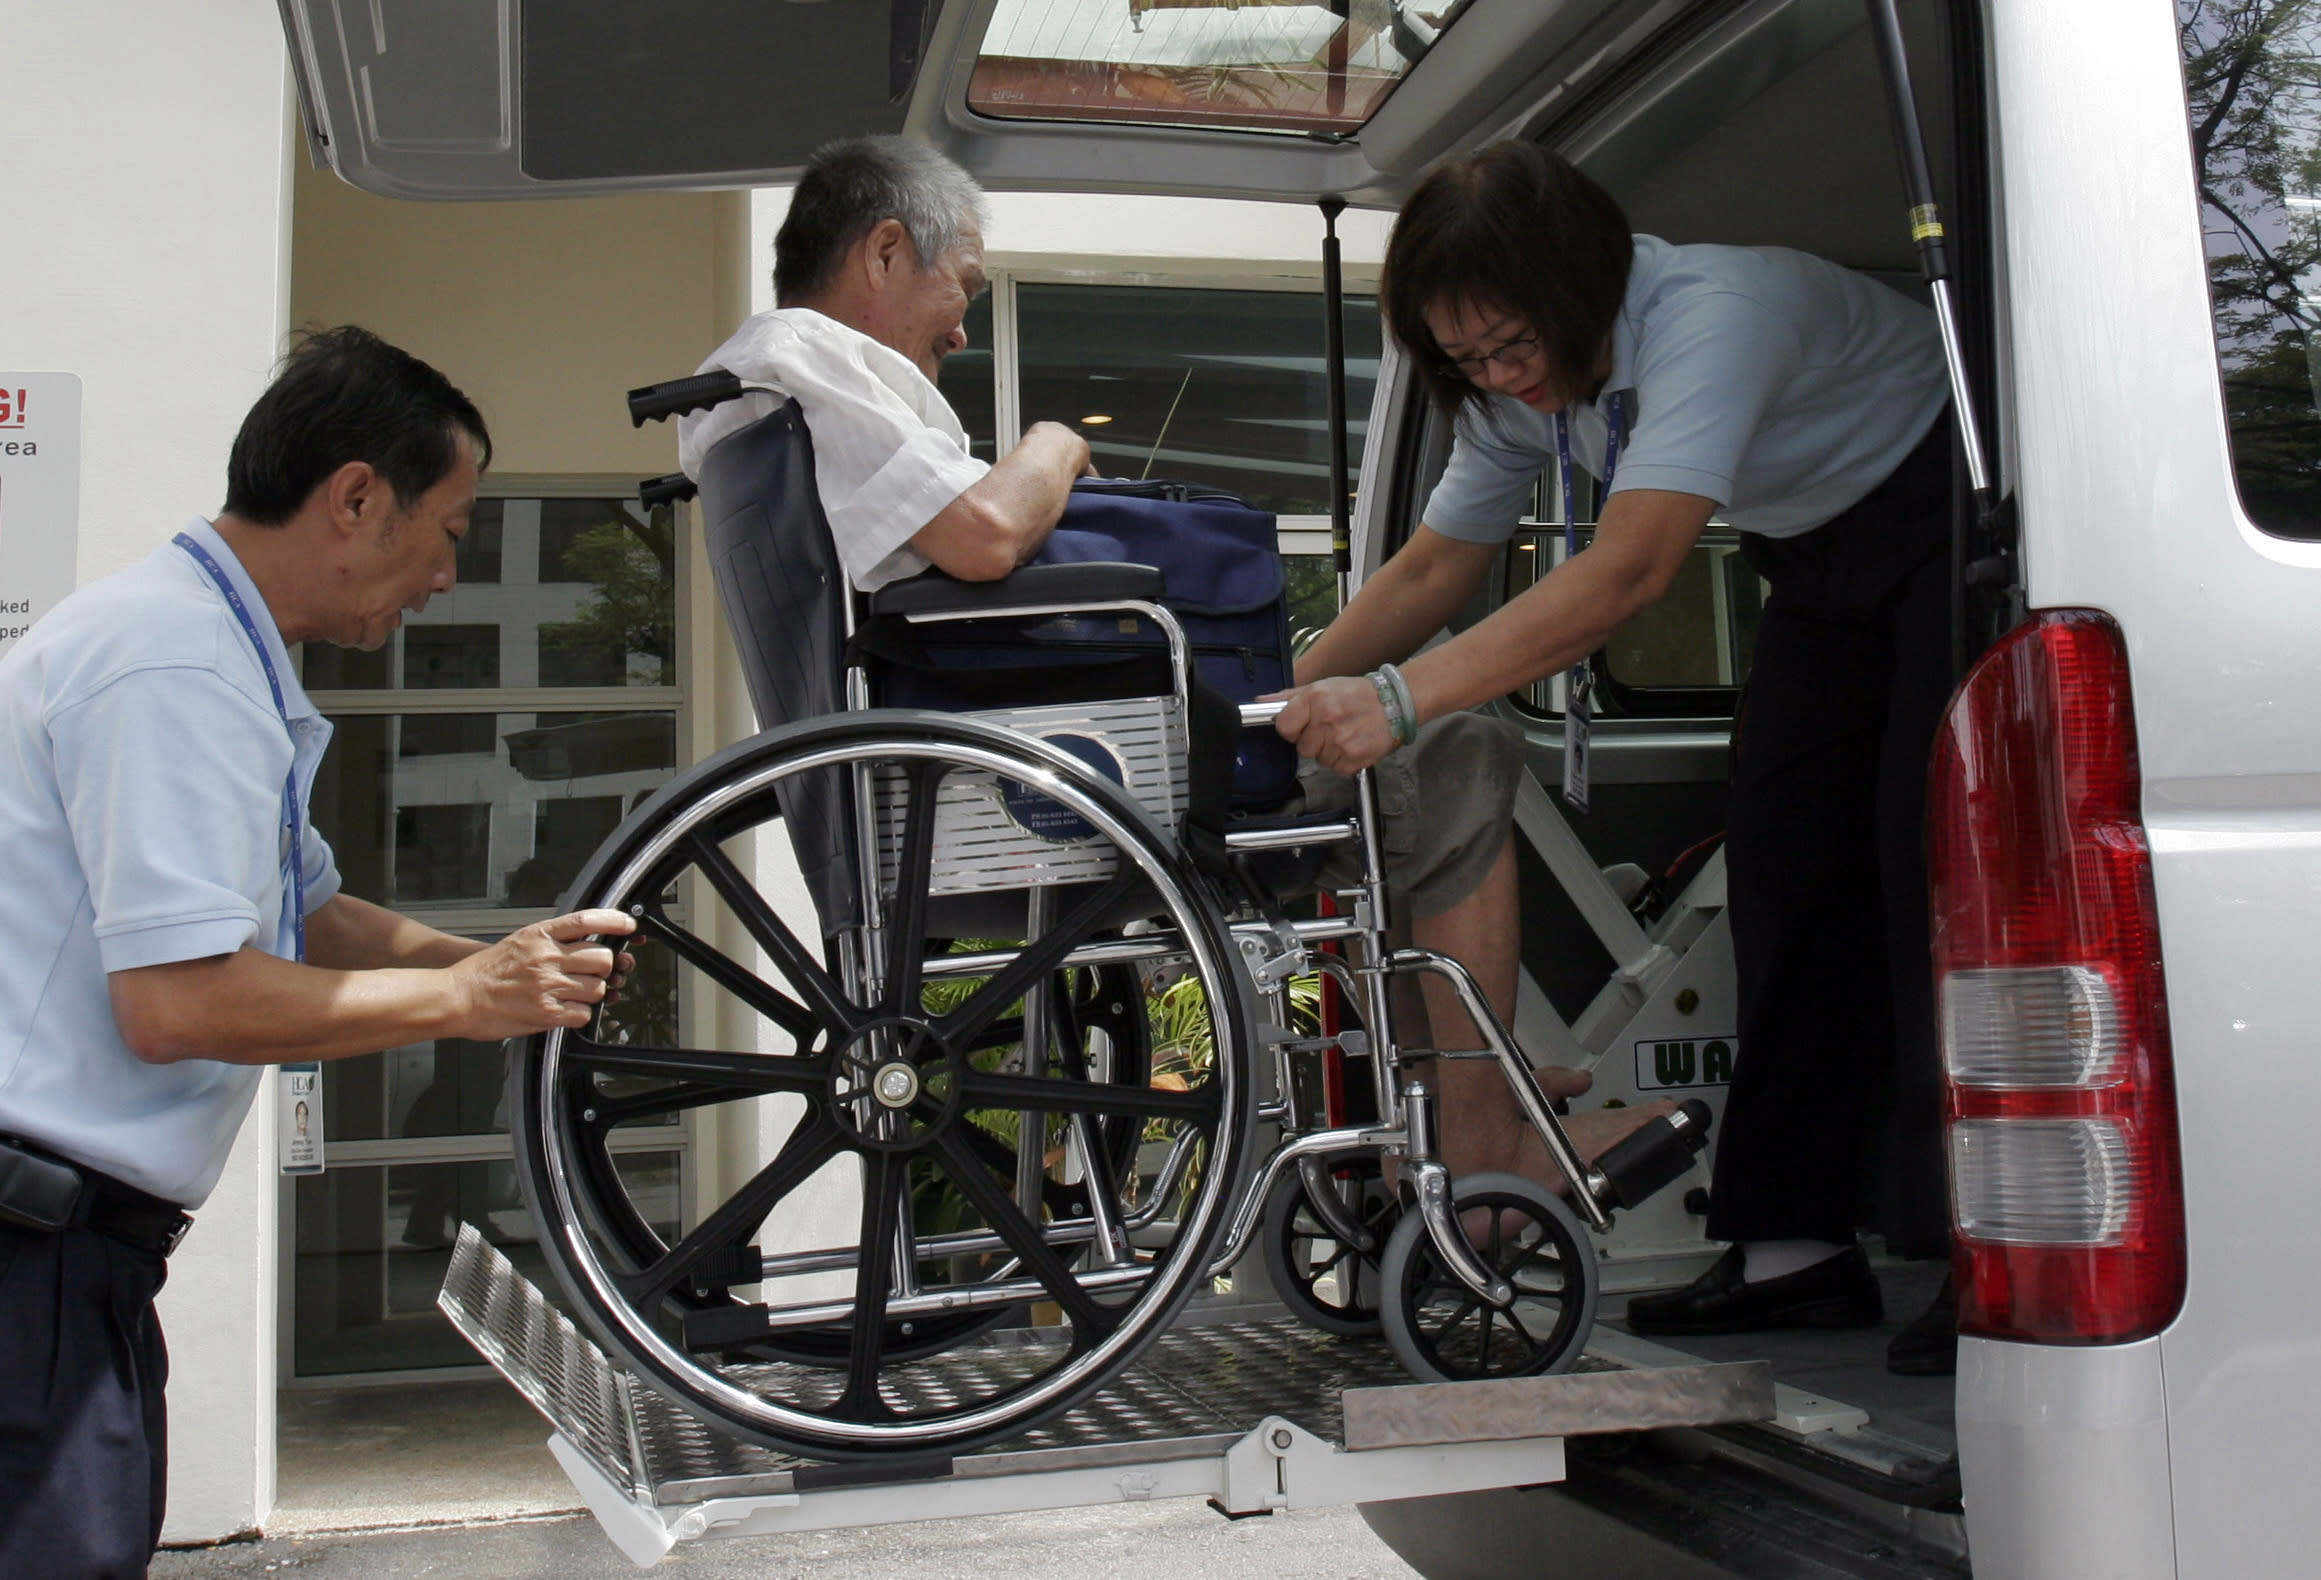 Caregivers for the elderly lose $57,000 in income per year: Aware report